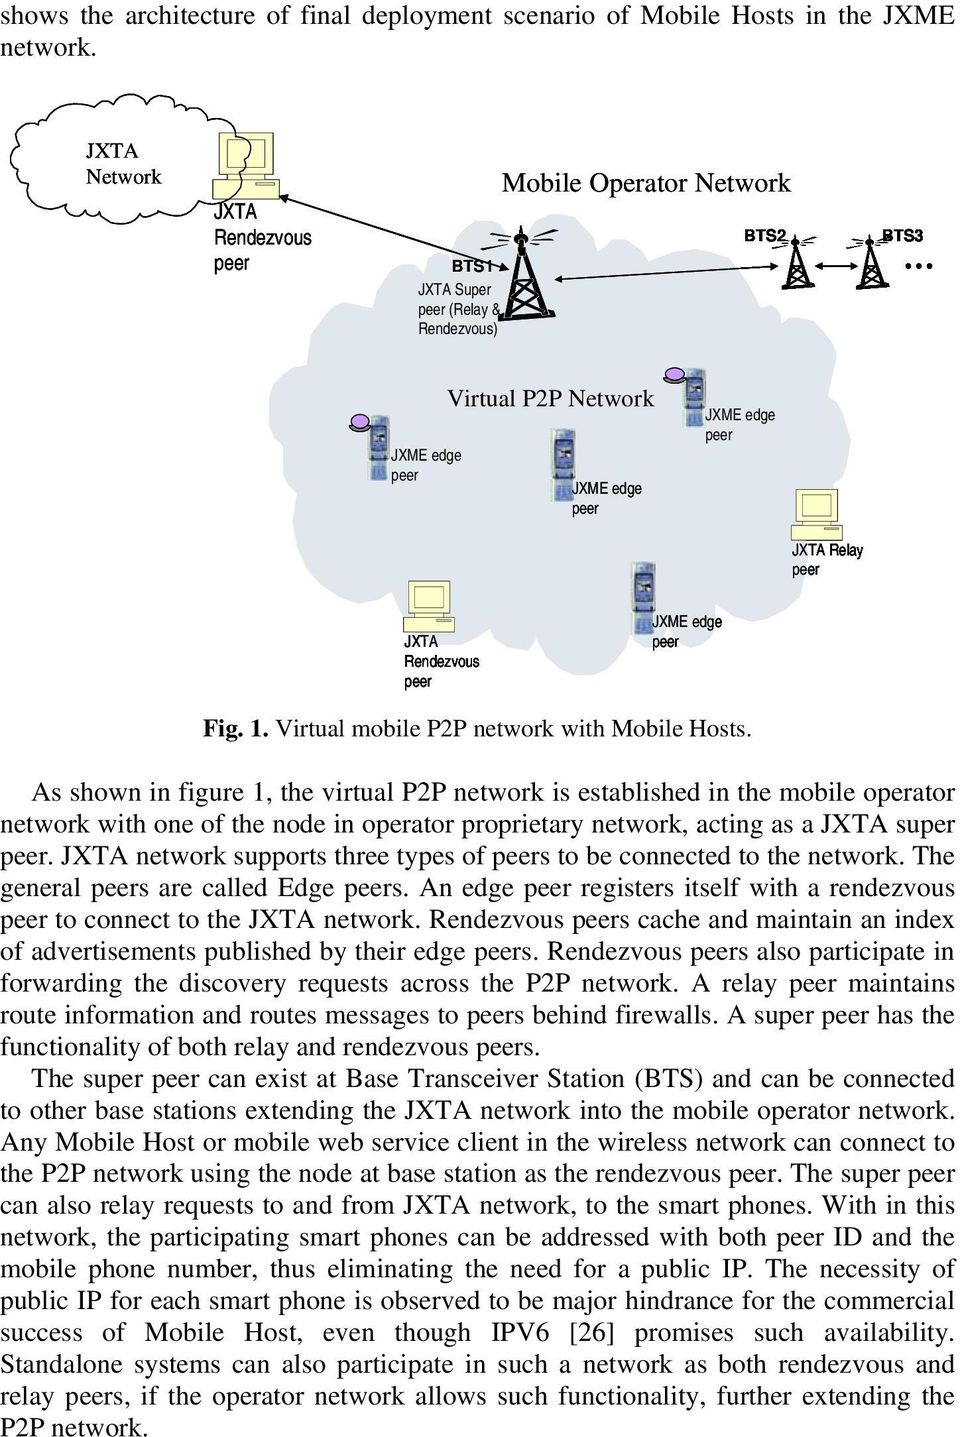 Virtual mobile P2P network with Mobile Hosts.